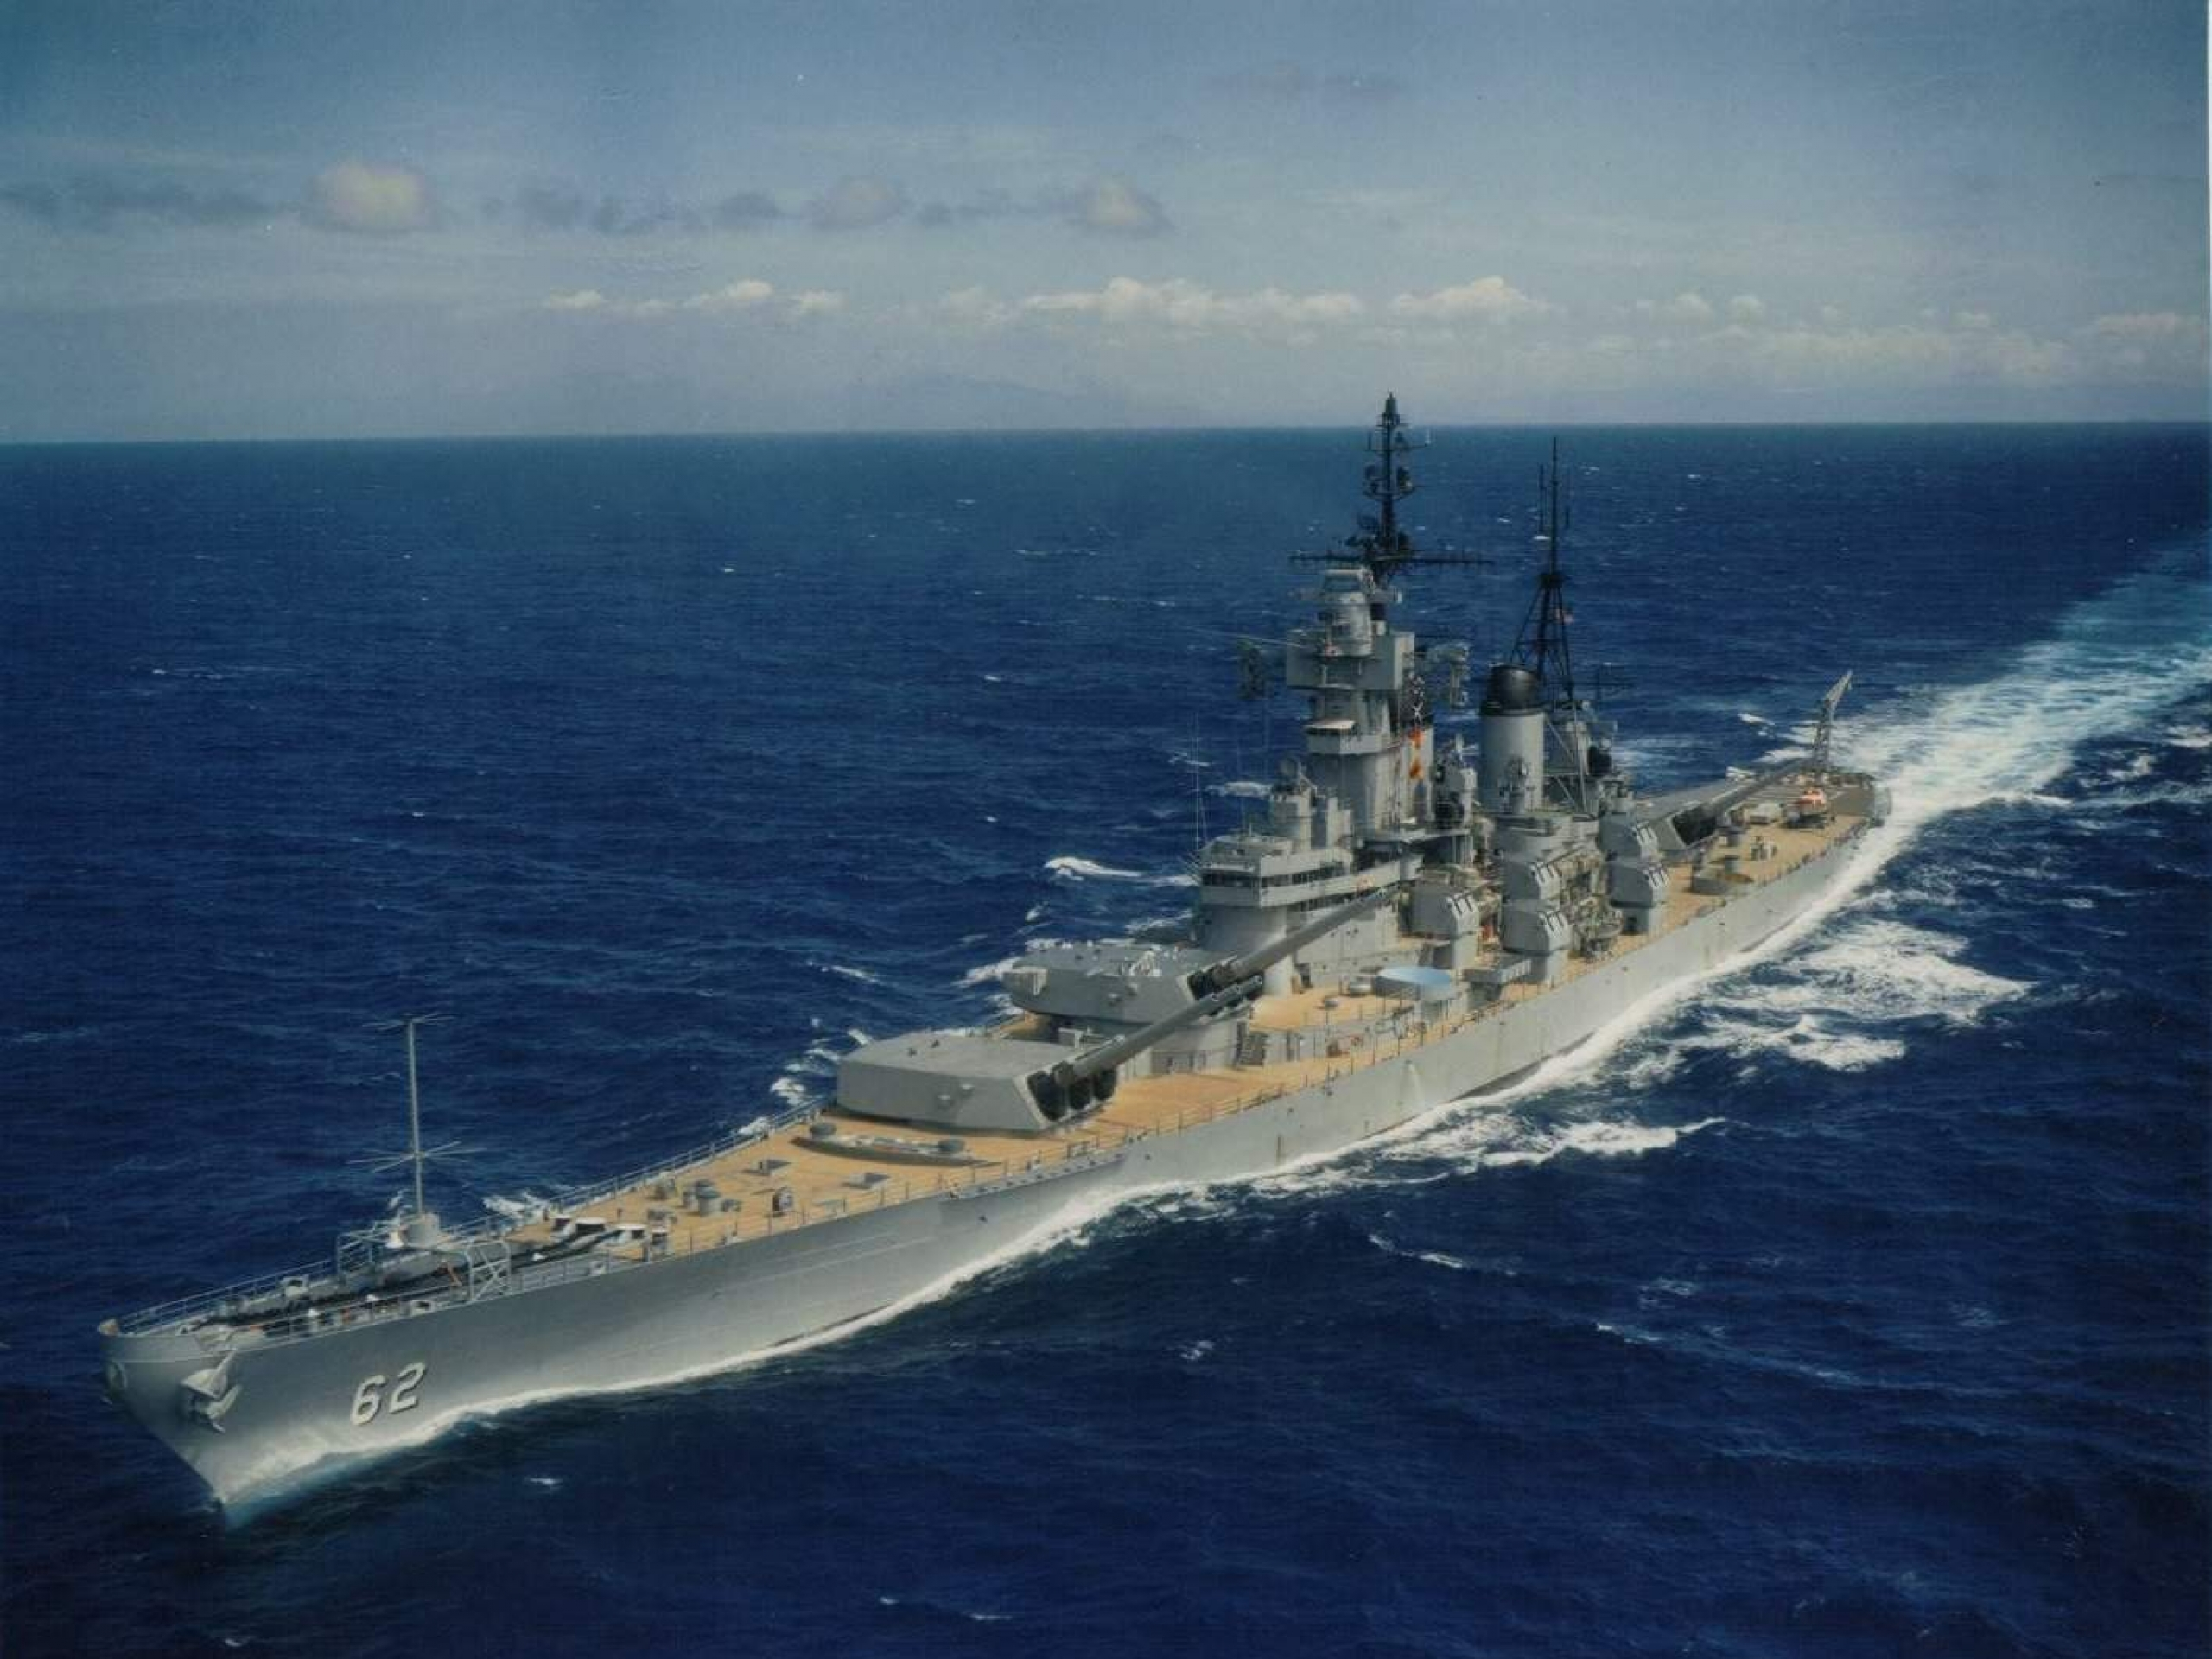 uss new jersey (bb-62) full hd wallpaper and background image